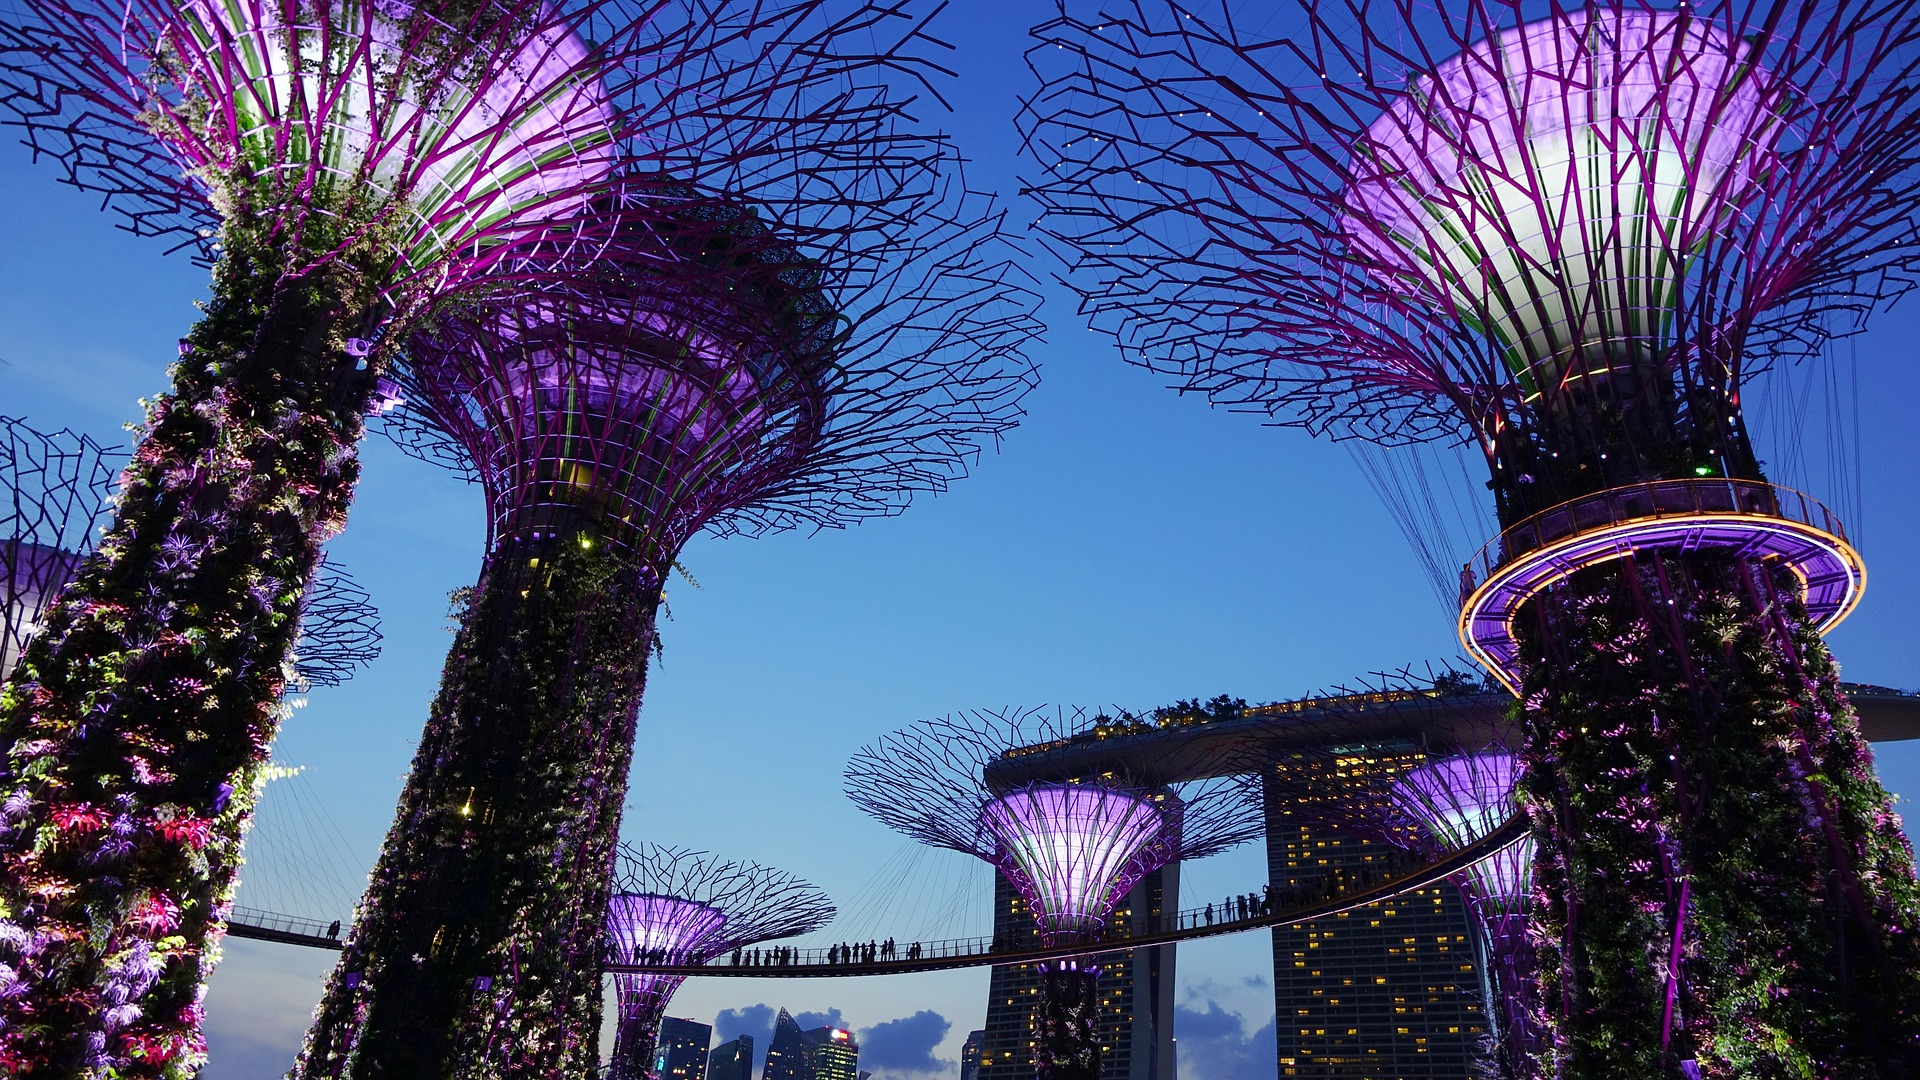 Gardens by the Bay - How to Spend 3 Days in Singapore